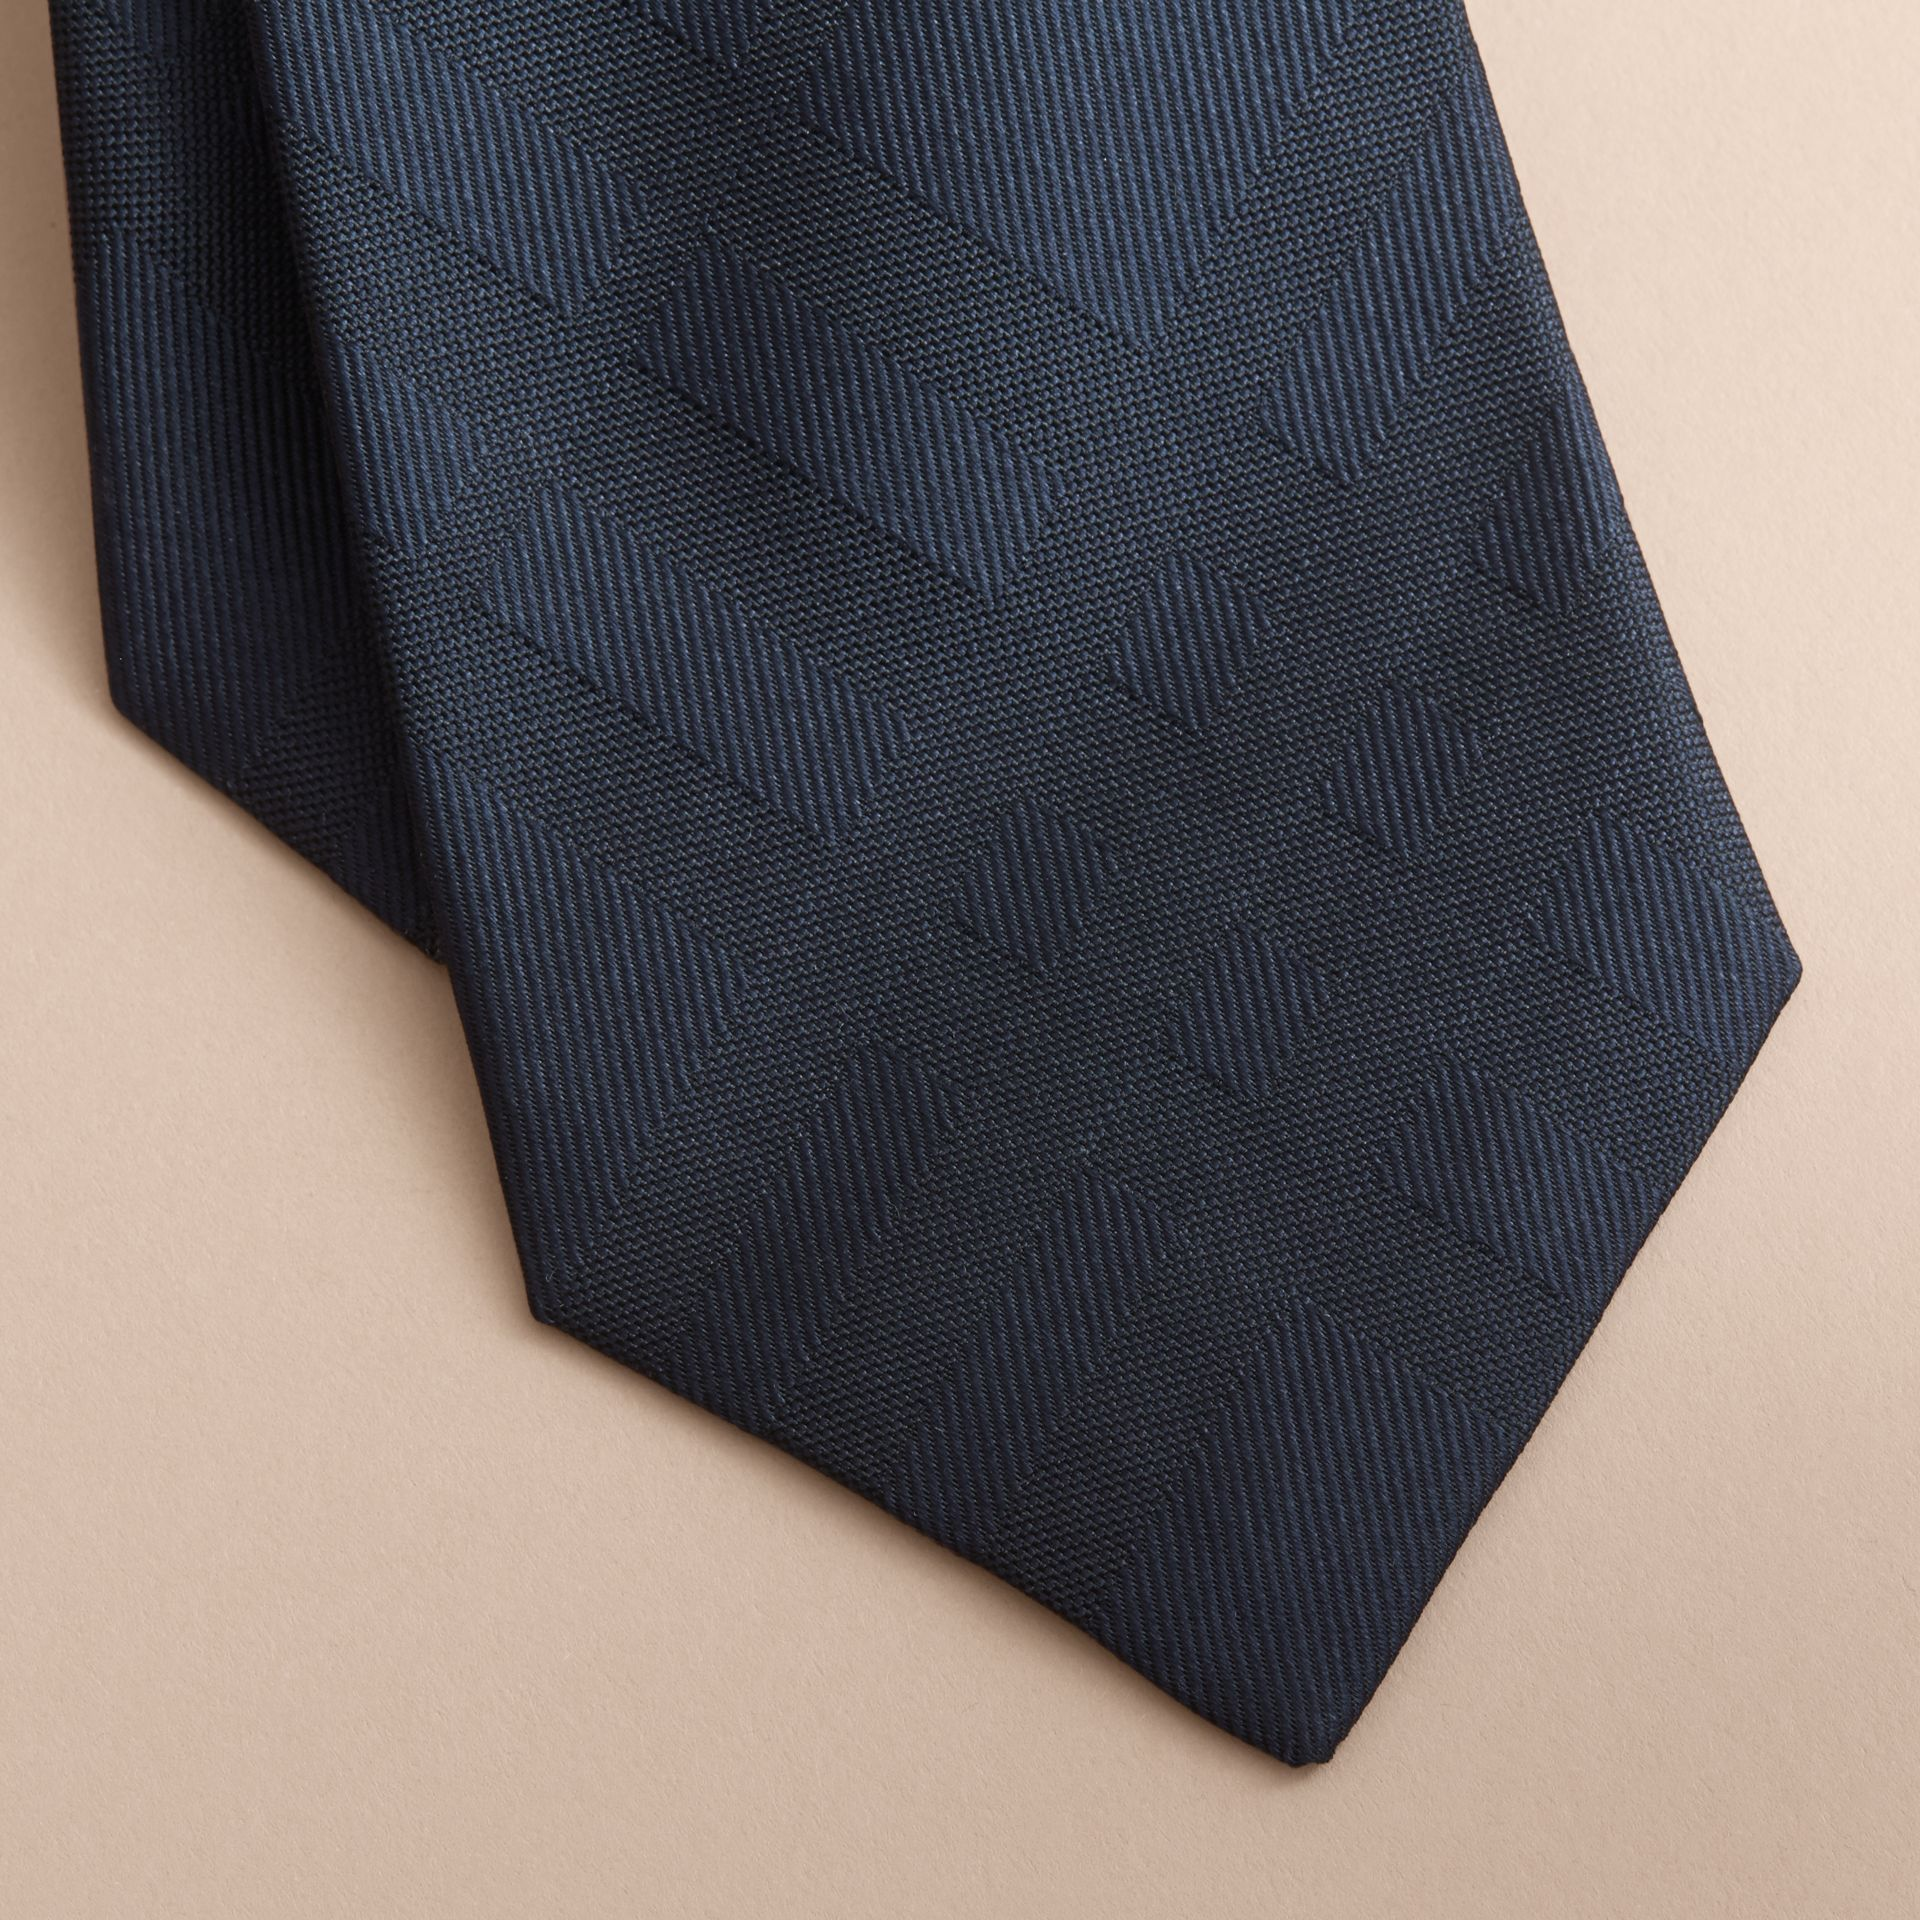 Classic Cut Check Silk Jacquard Tie in Navy - Men | Burberry Hong Kong - gallery image 2